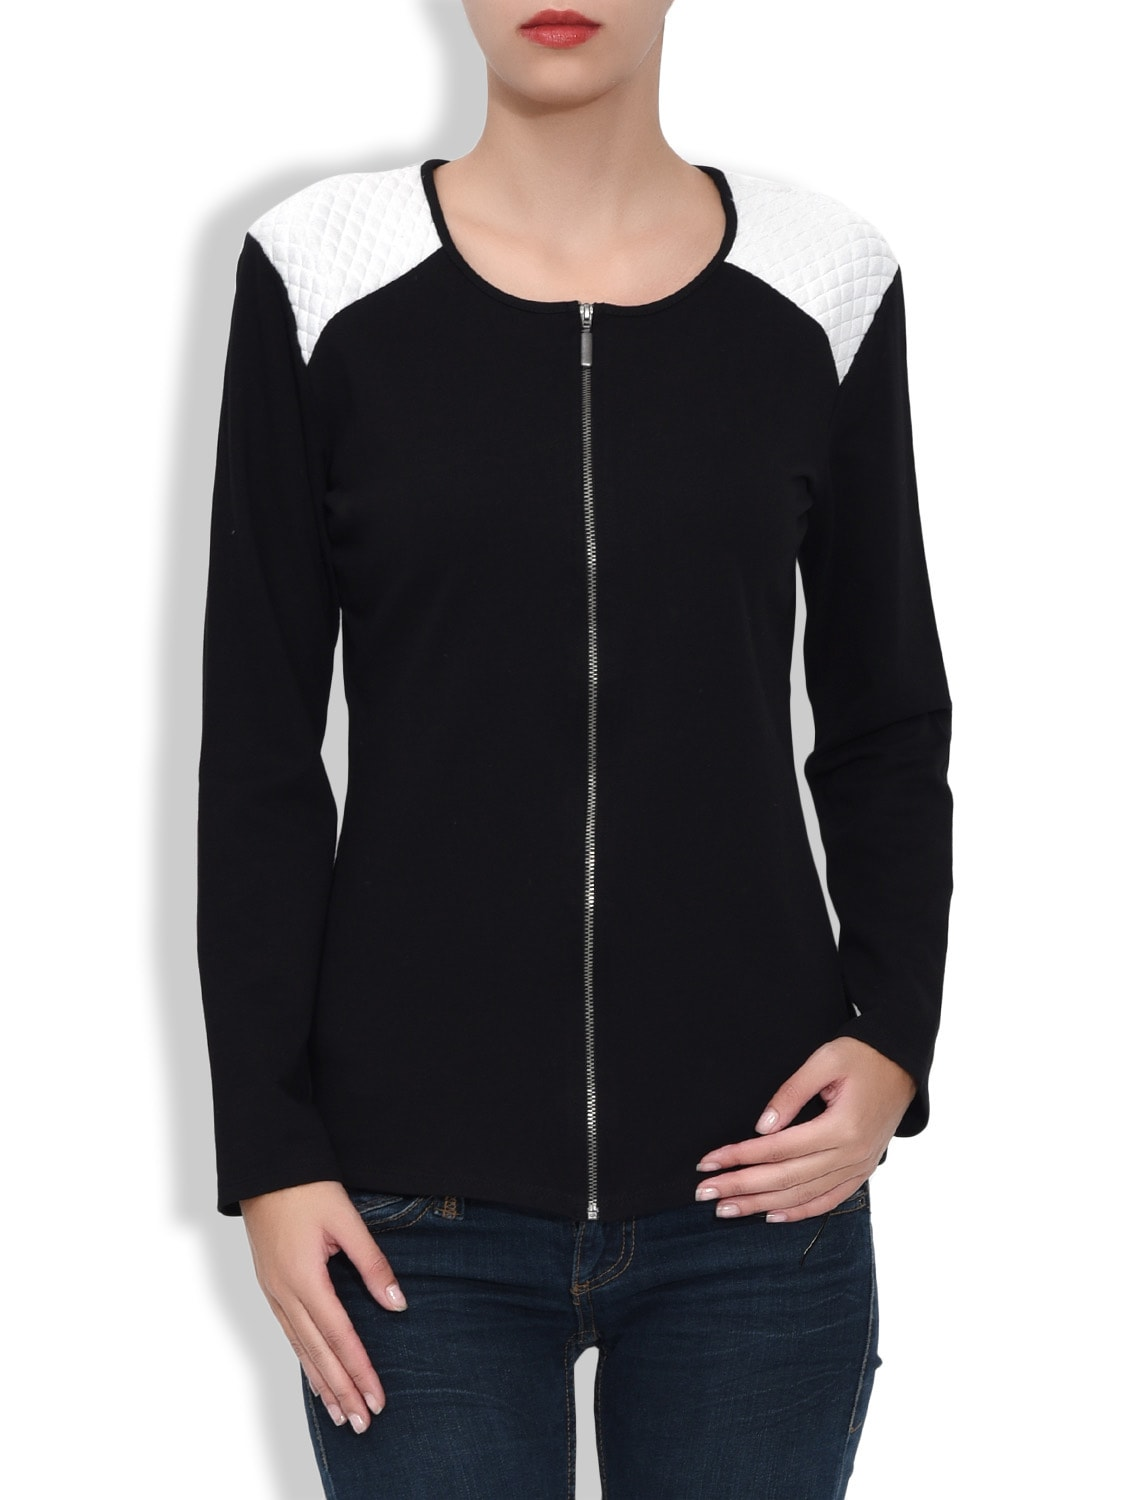 Black And White Fleece Jacket With Quilted Shoulders - By